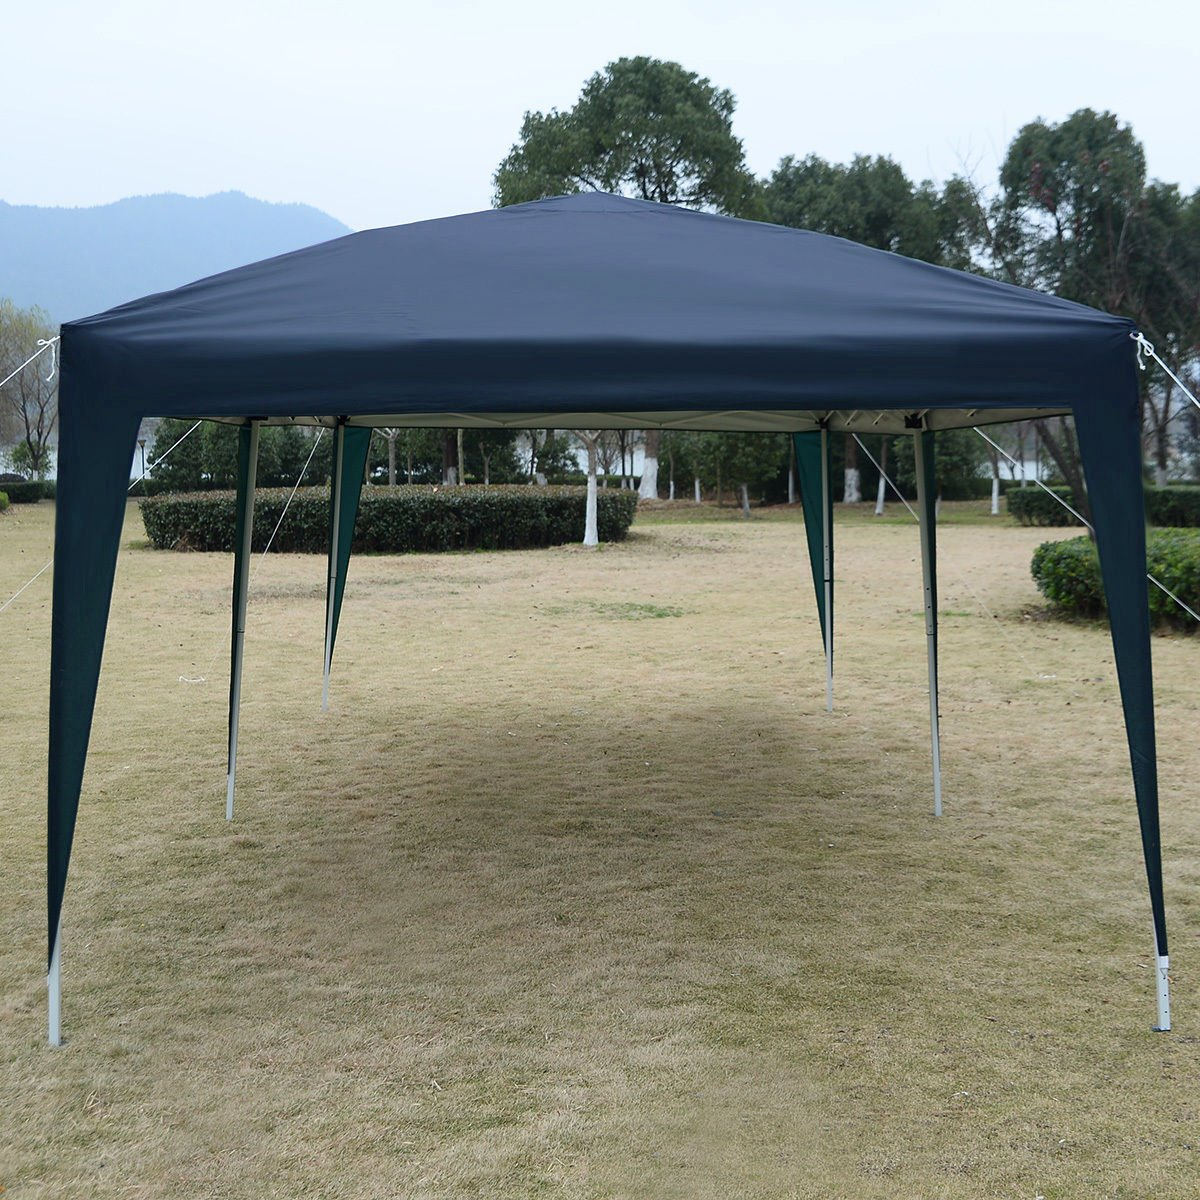 Blue 10'X20' EZ POP UP Gazebo Wedding Party Tent Folding Canopy Carry Bag Cross-Ba by Tamsun